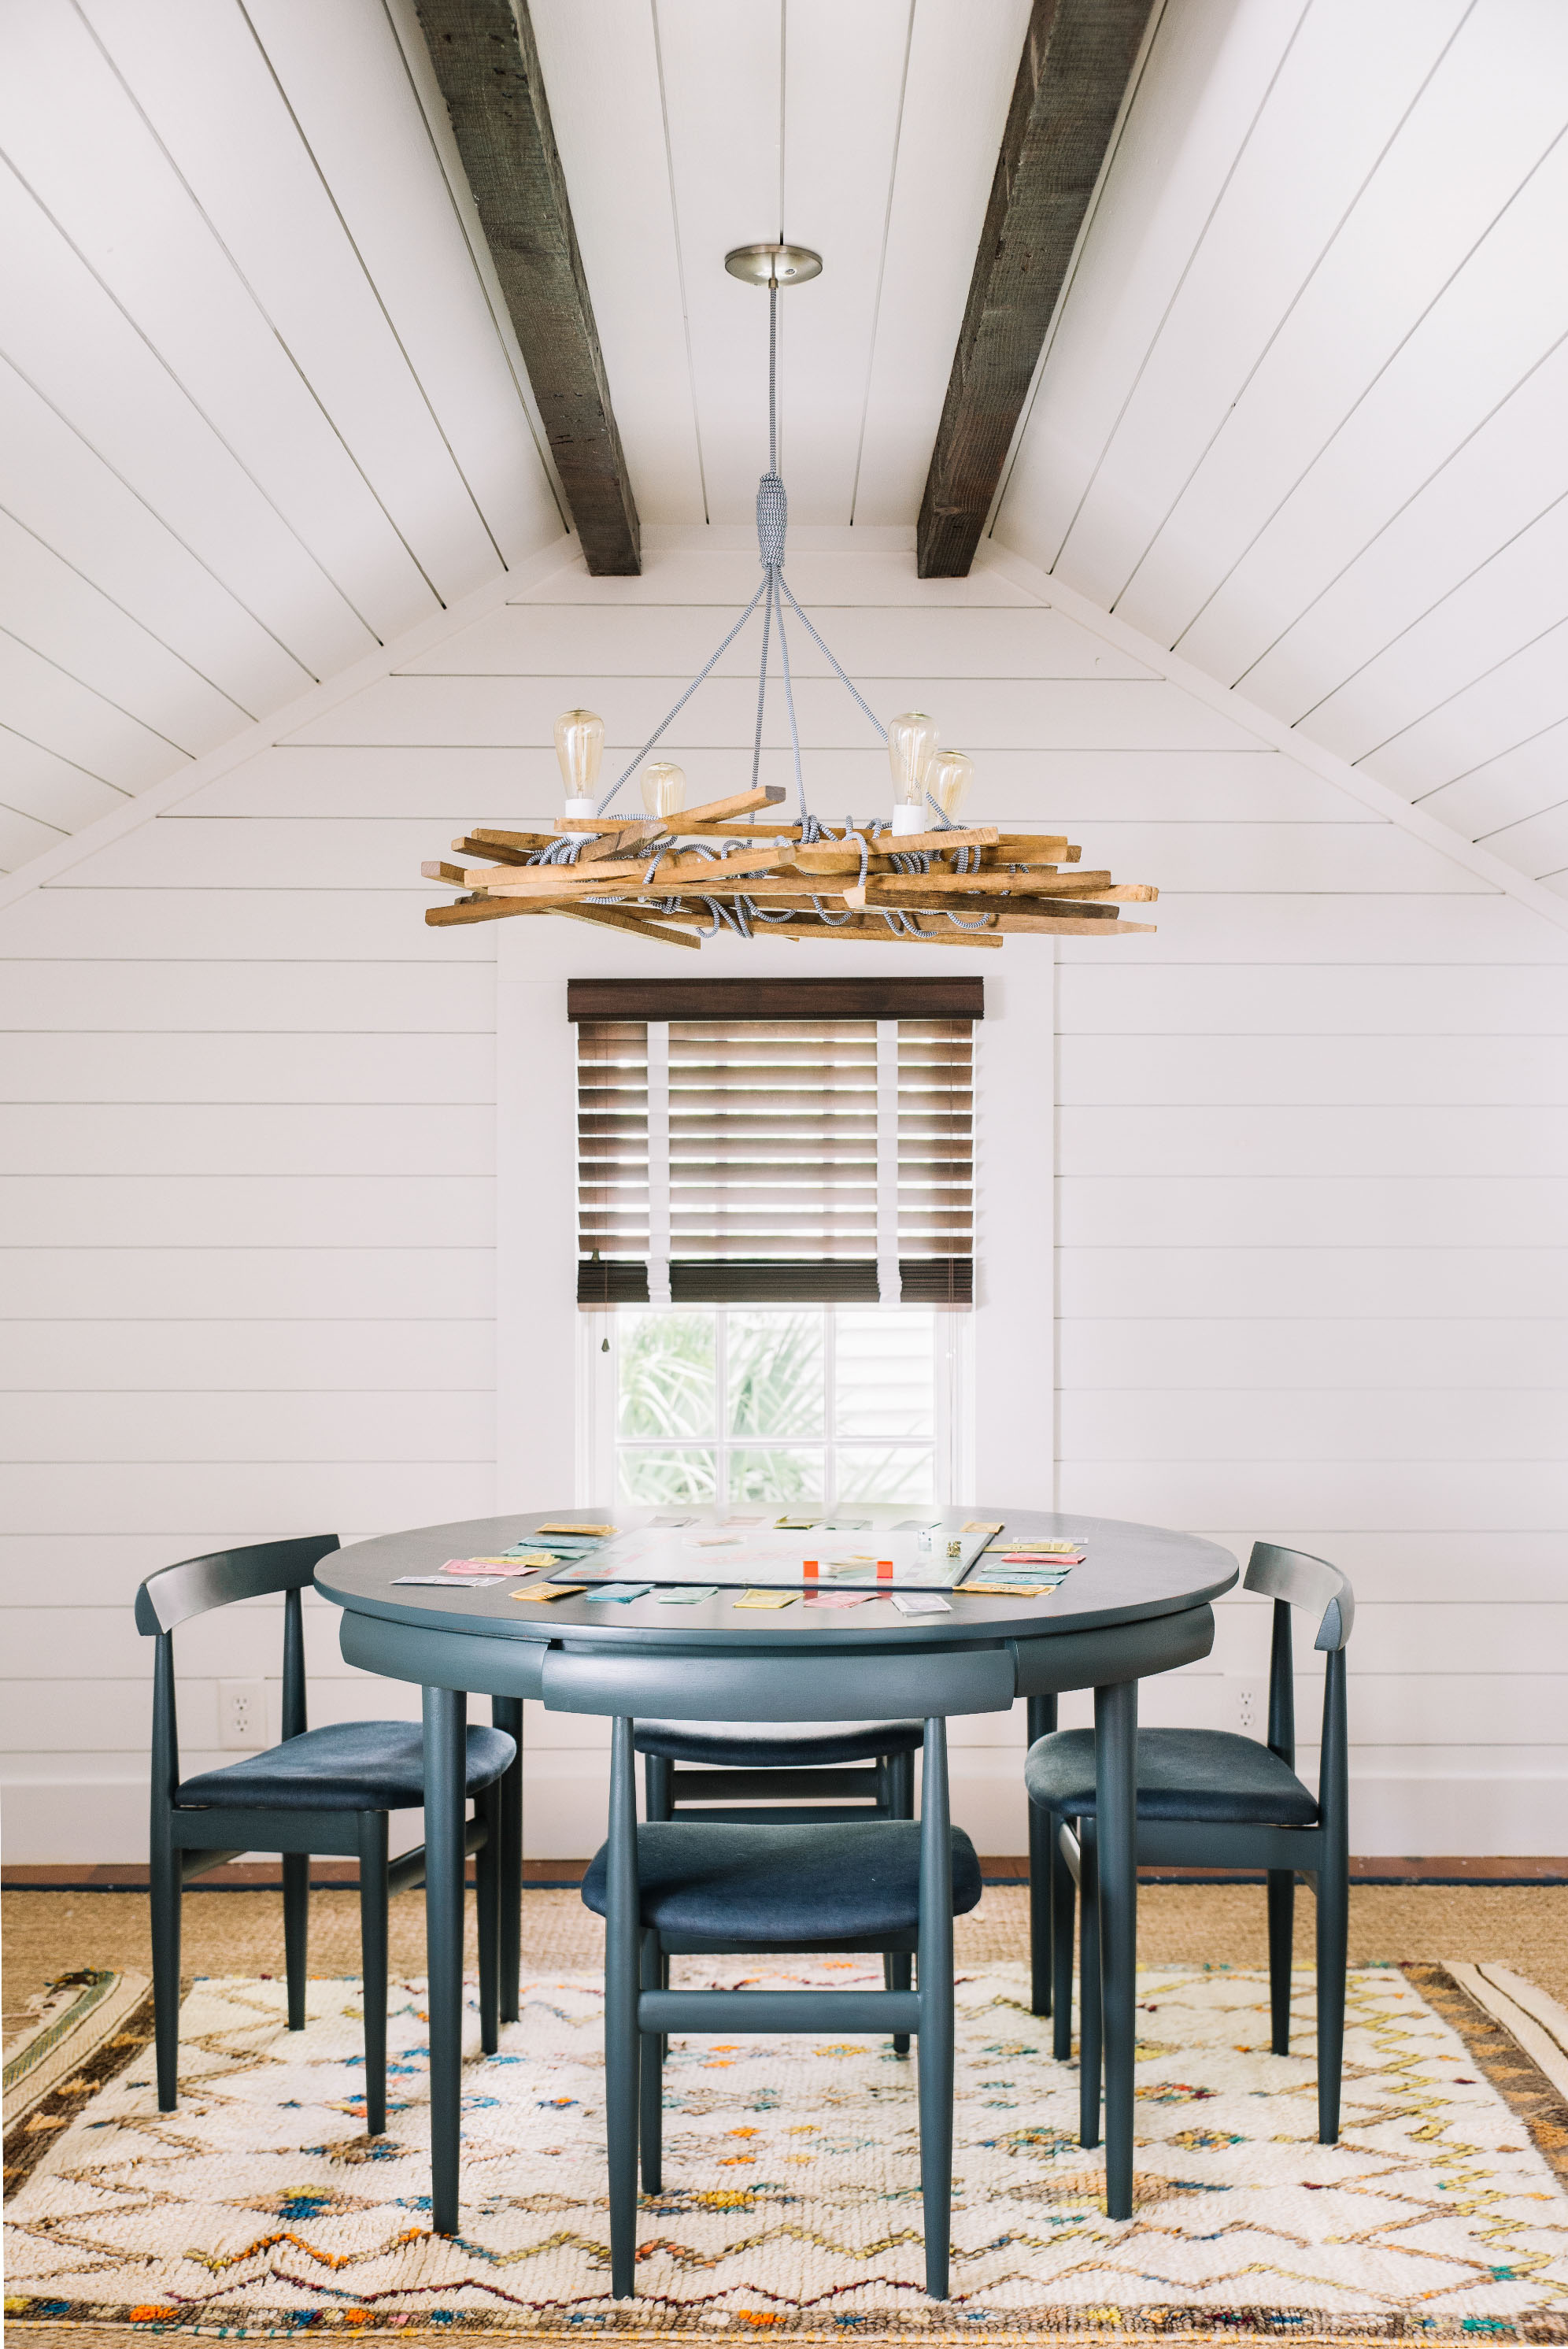 wood and rope chandelier above round table south carolina beach house